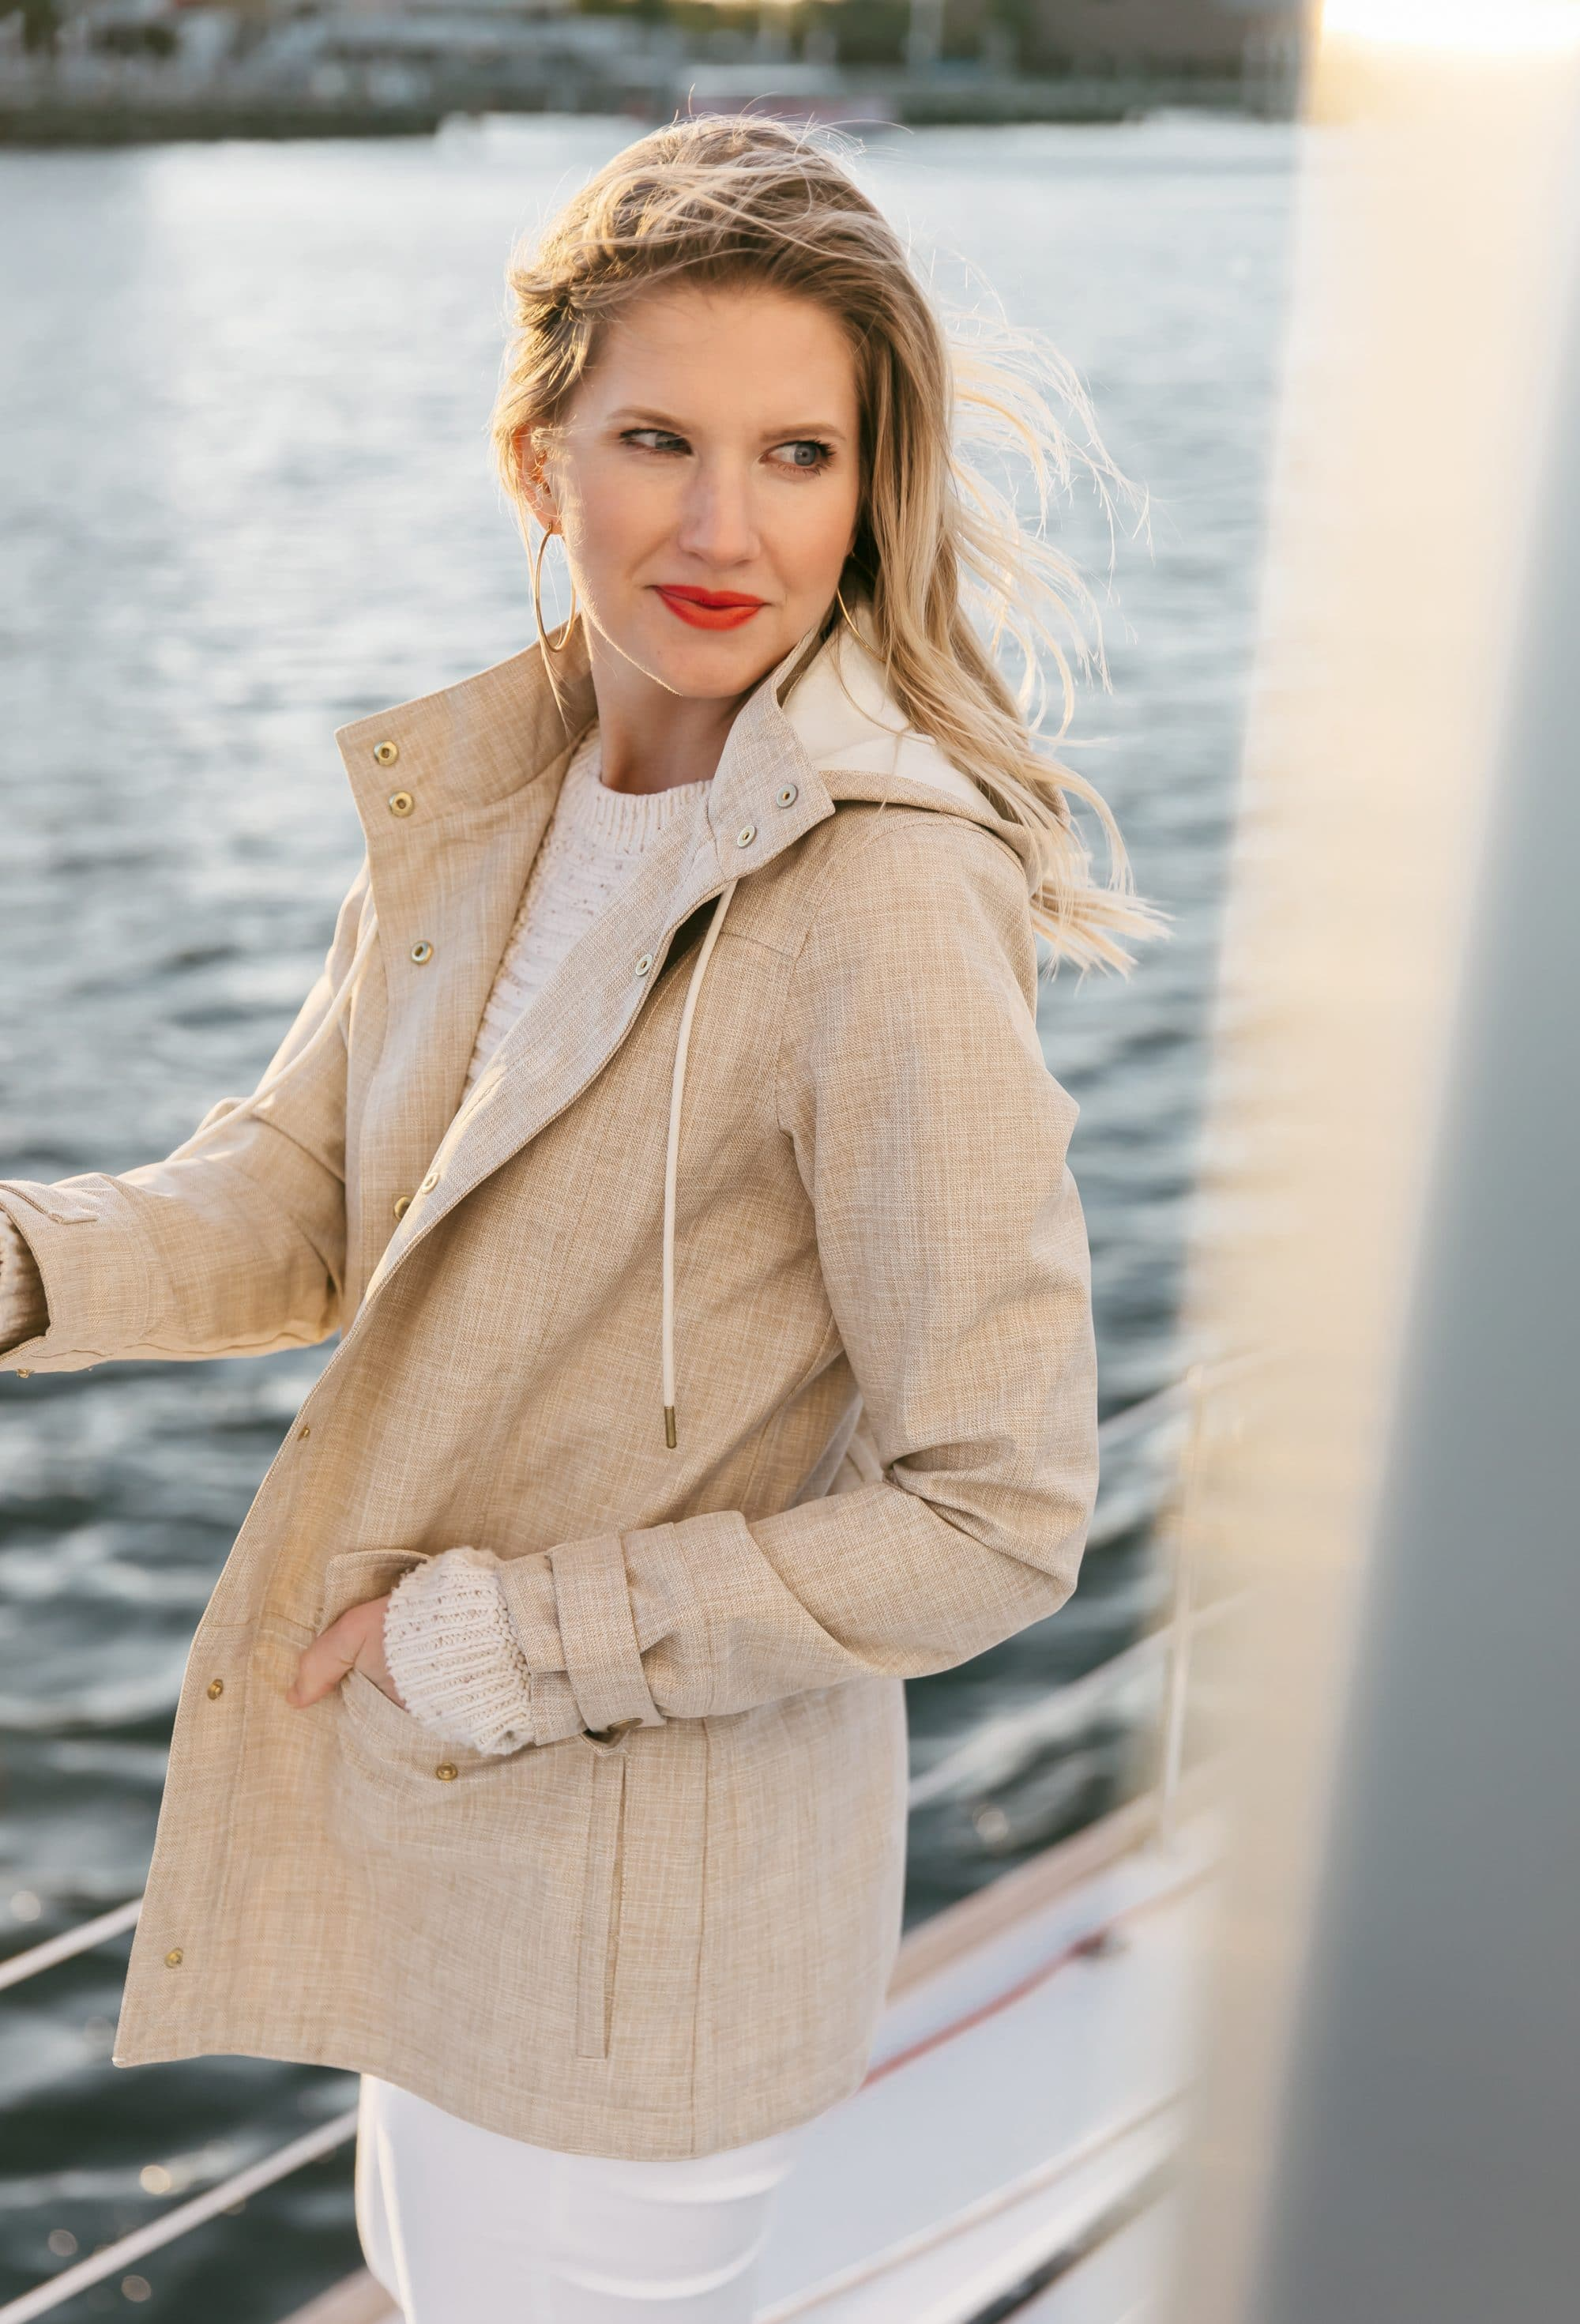 Ashley Brooke on Charleston Sail Boat - Ashley Brooke Designs